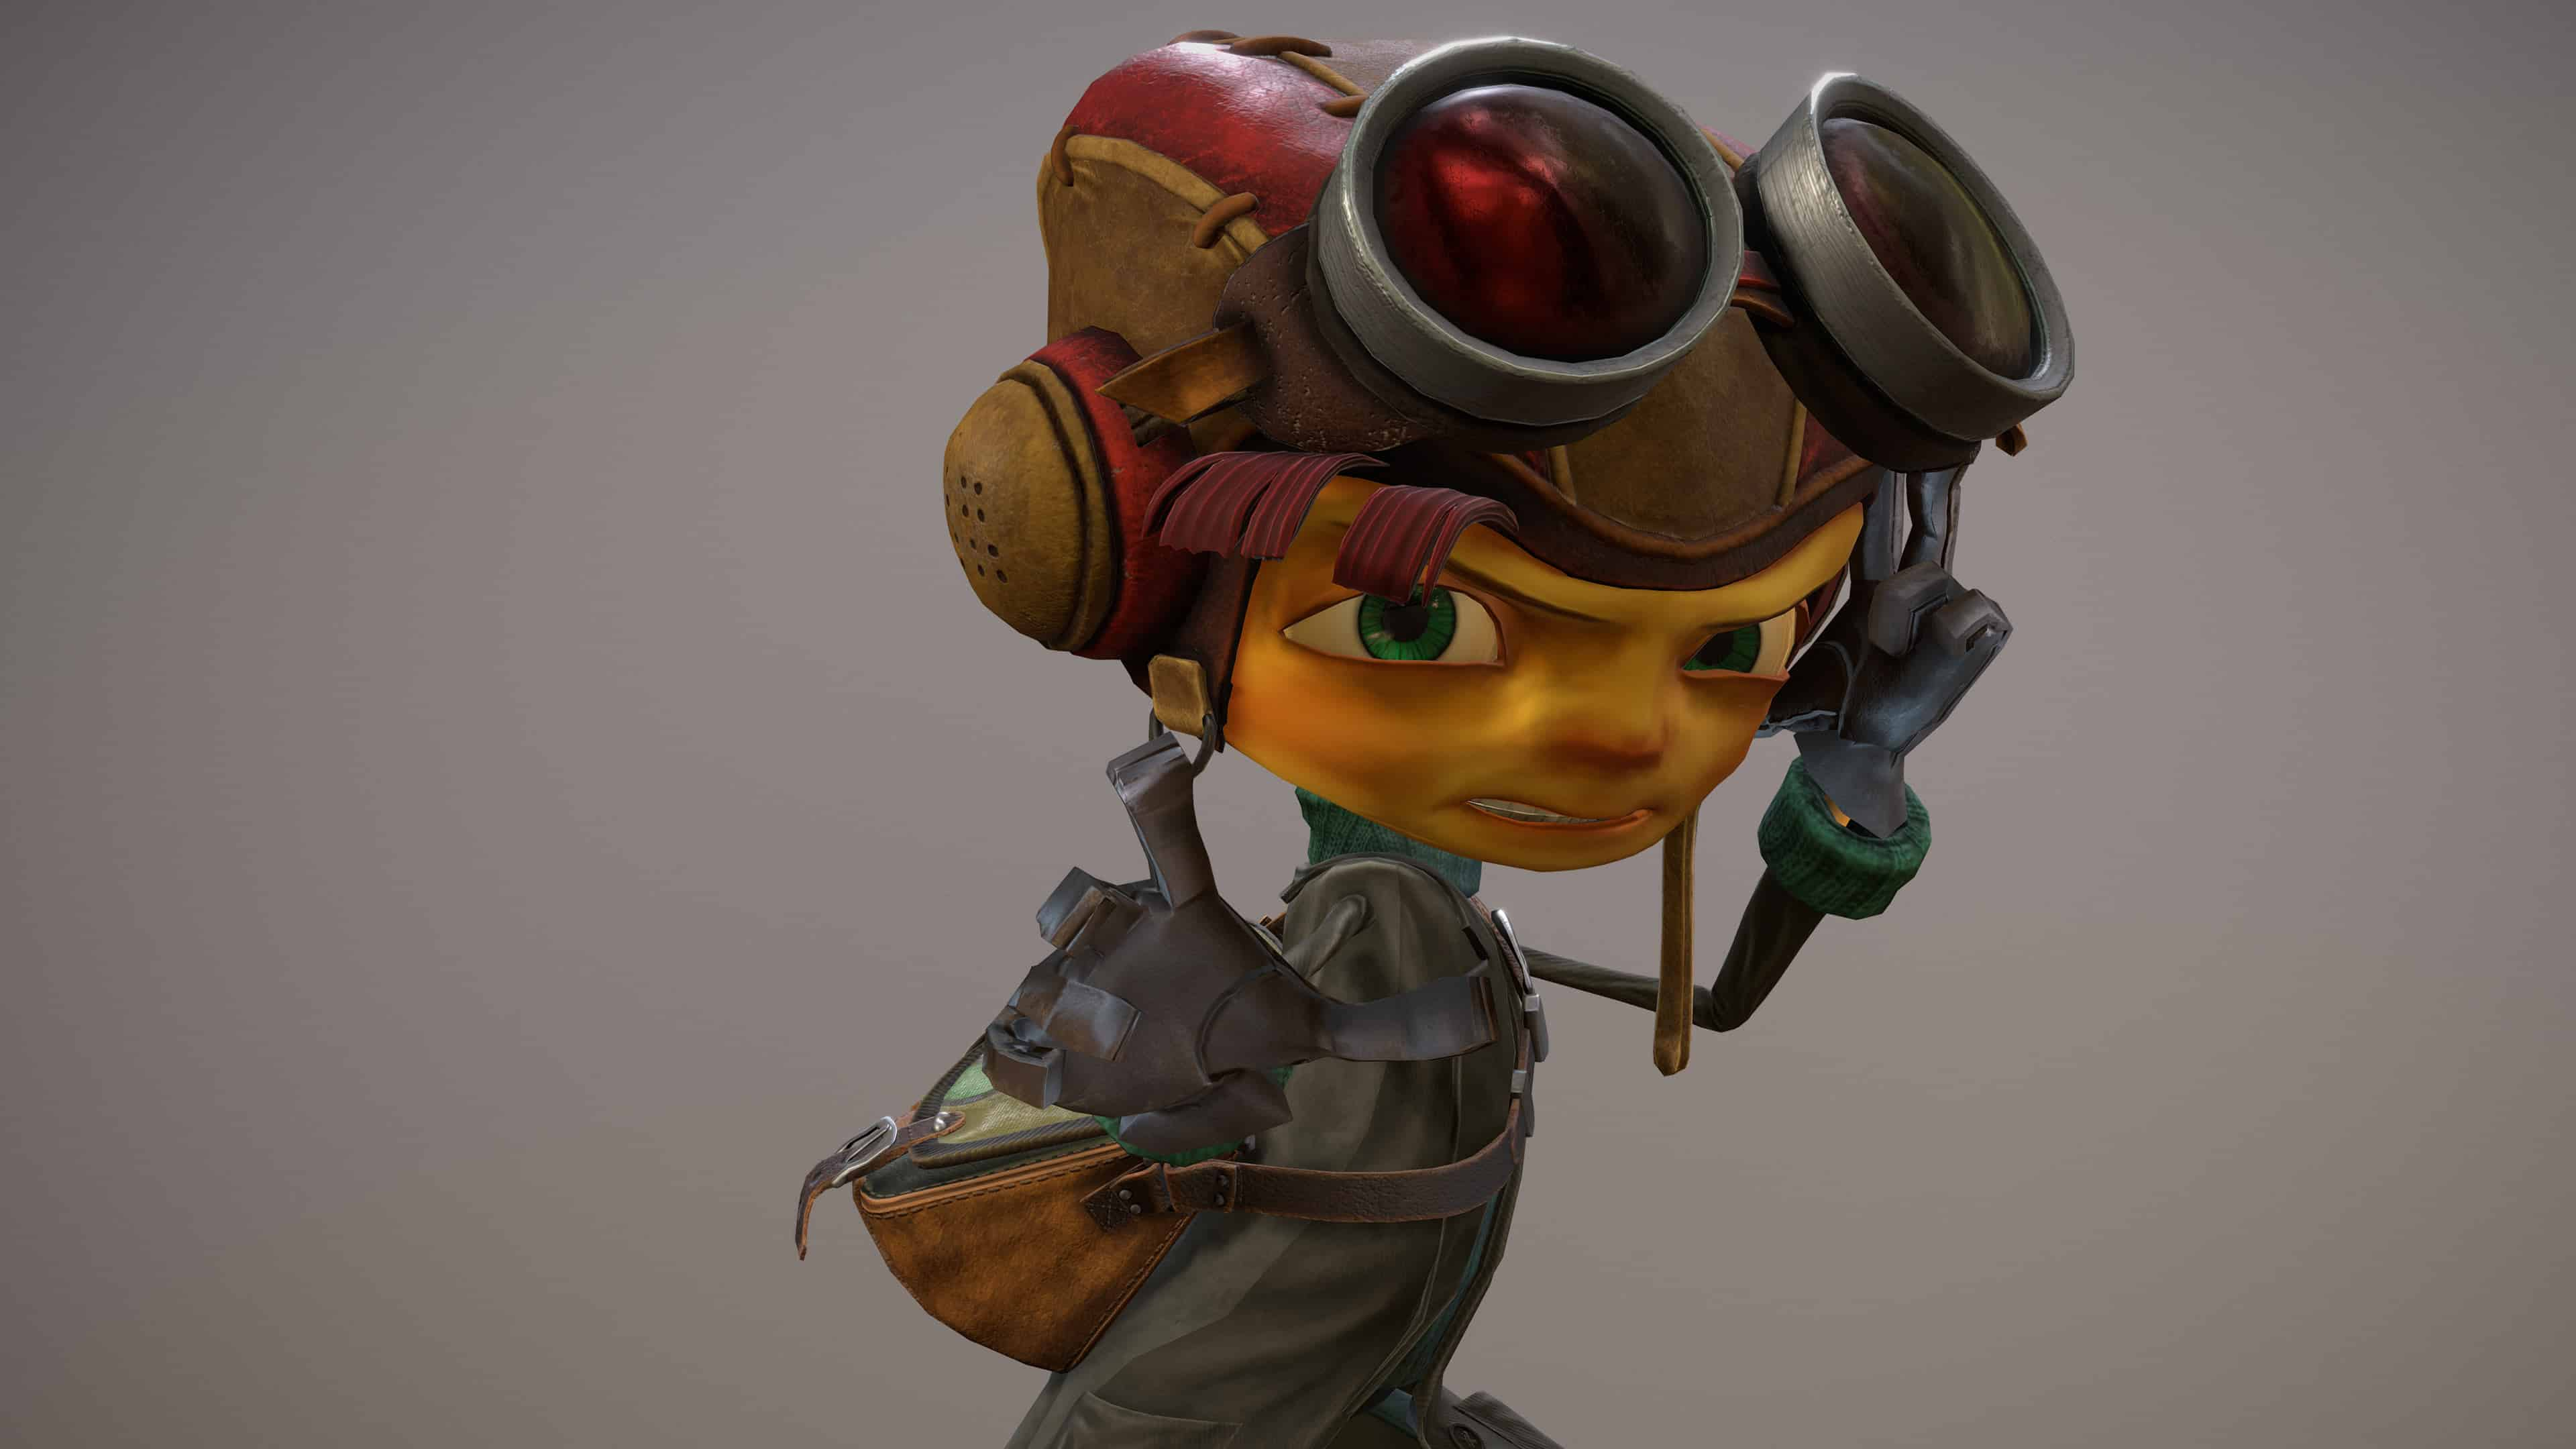 psychonauts 2 uhd 4k wallpaper